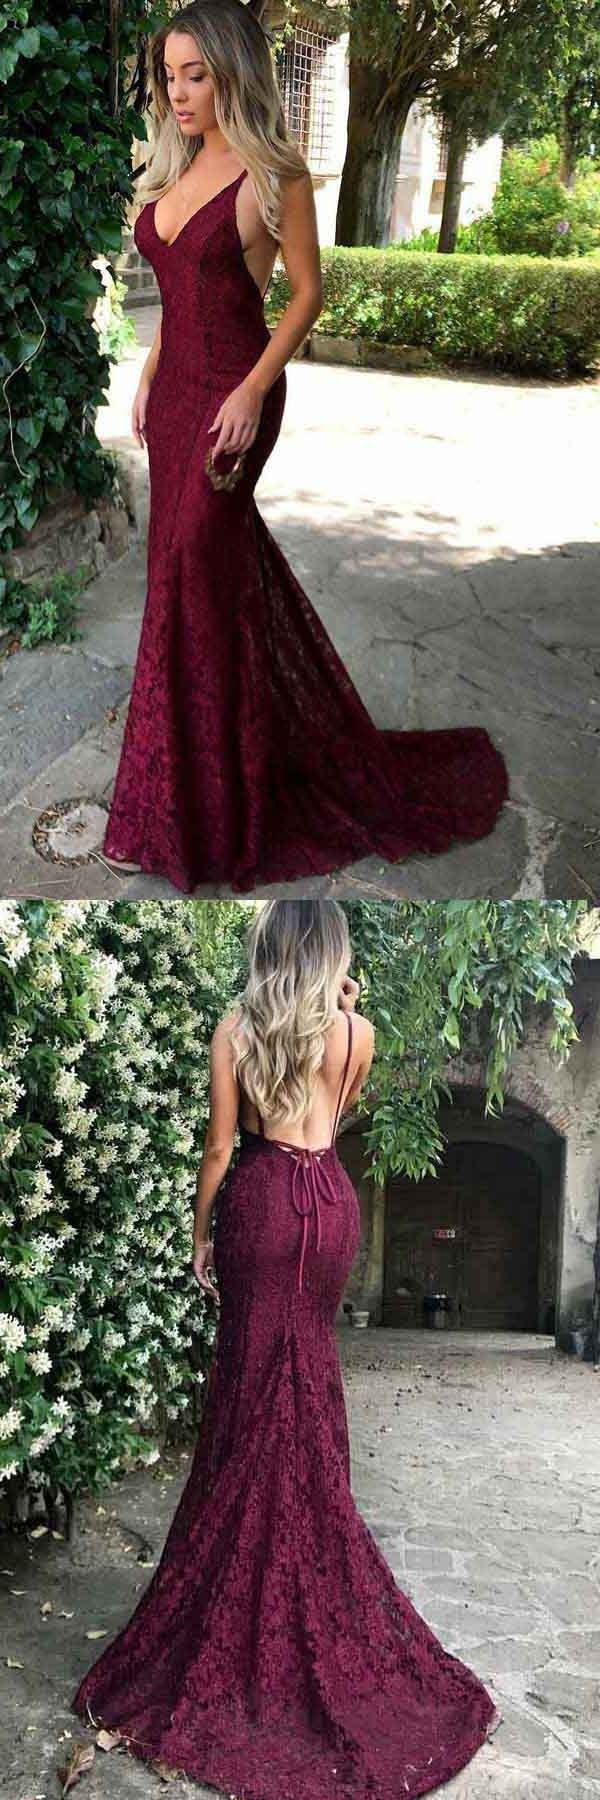 Outlet delightful prom dresses backless mermaid spaghetti straps